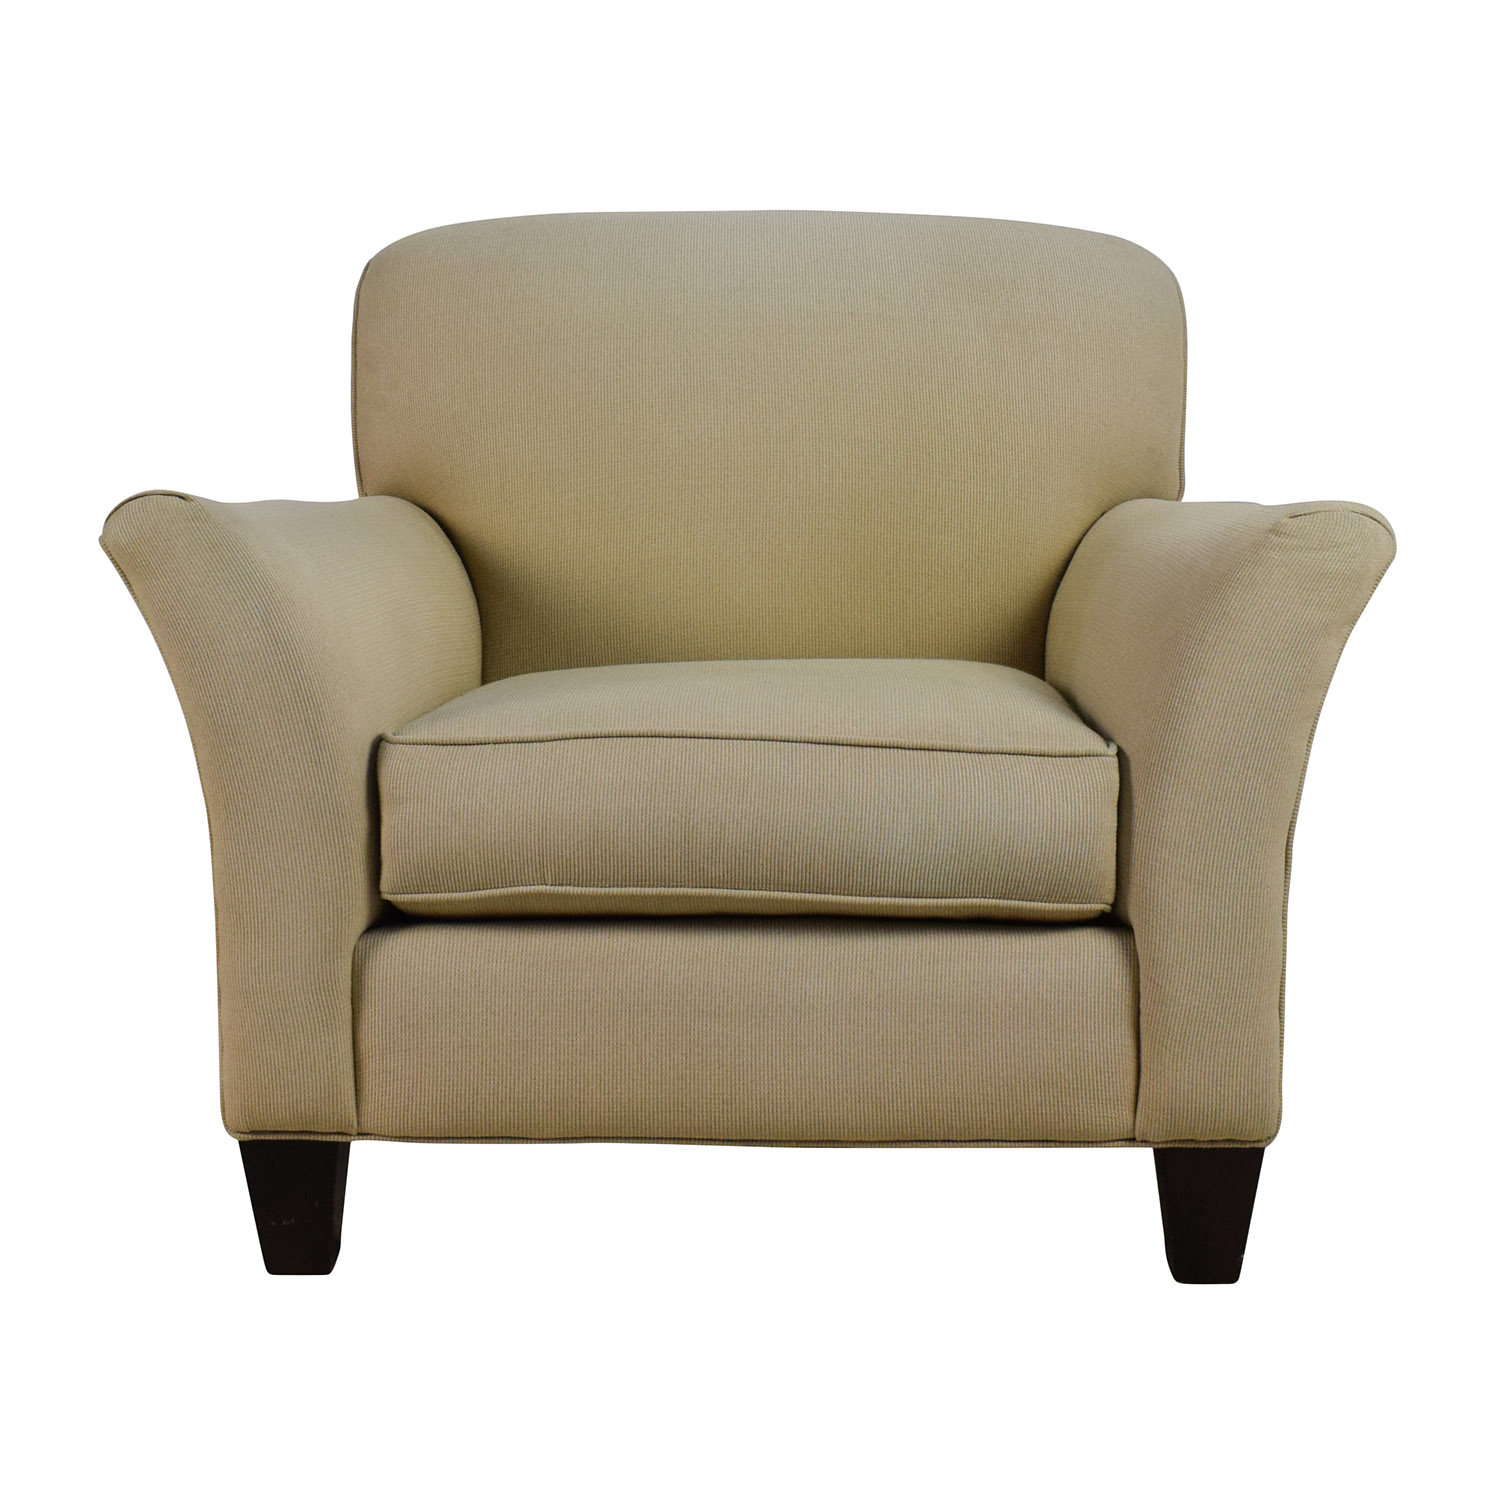 Rowe Furniture Rowe Furniture Capri Beige Sofa Chair nj